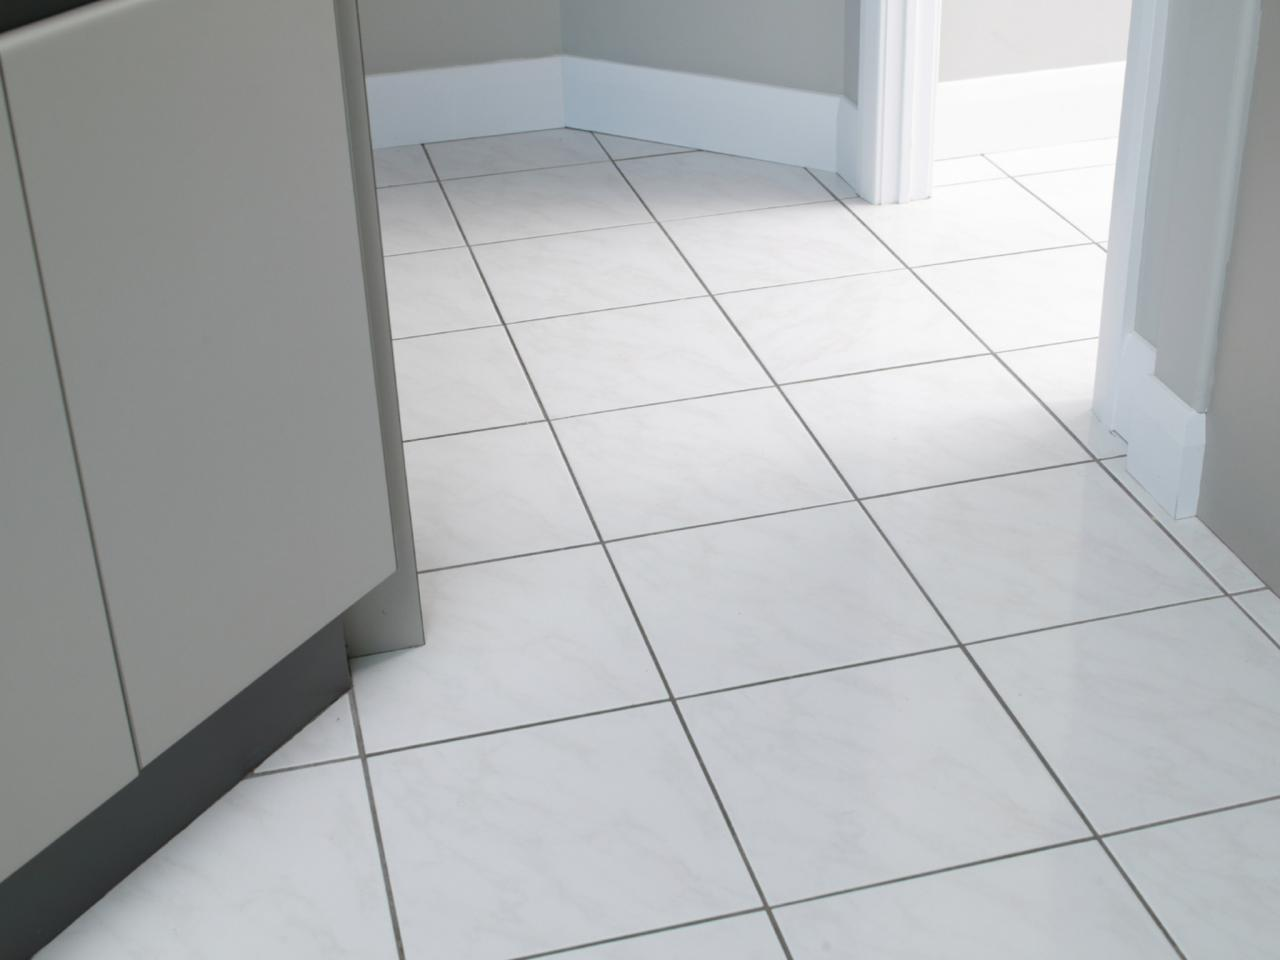 How to clean ceramic tile floors diy how to clean ceramic tile floors dailygadgetfo Images